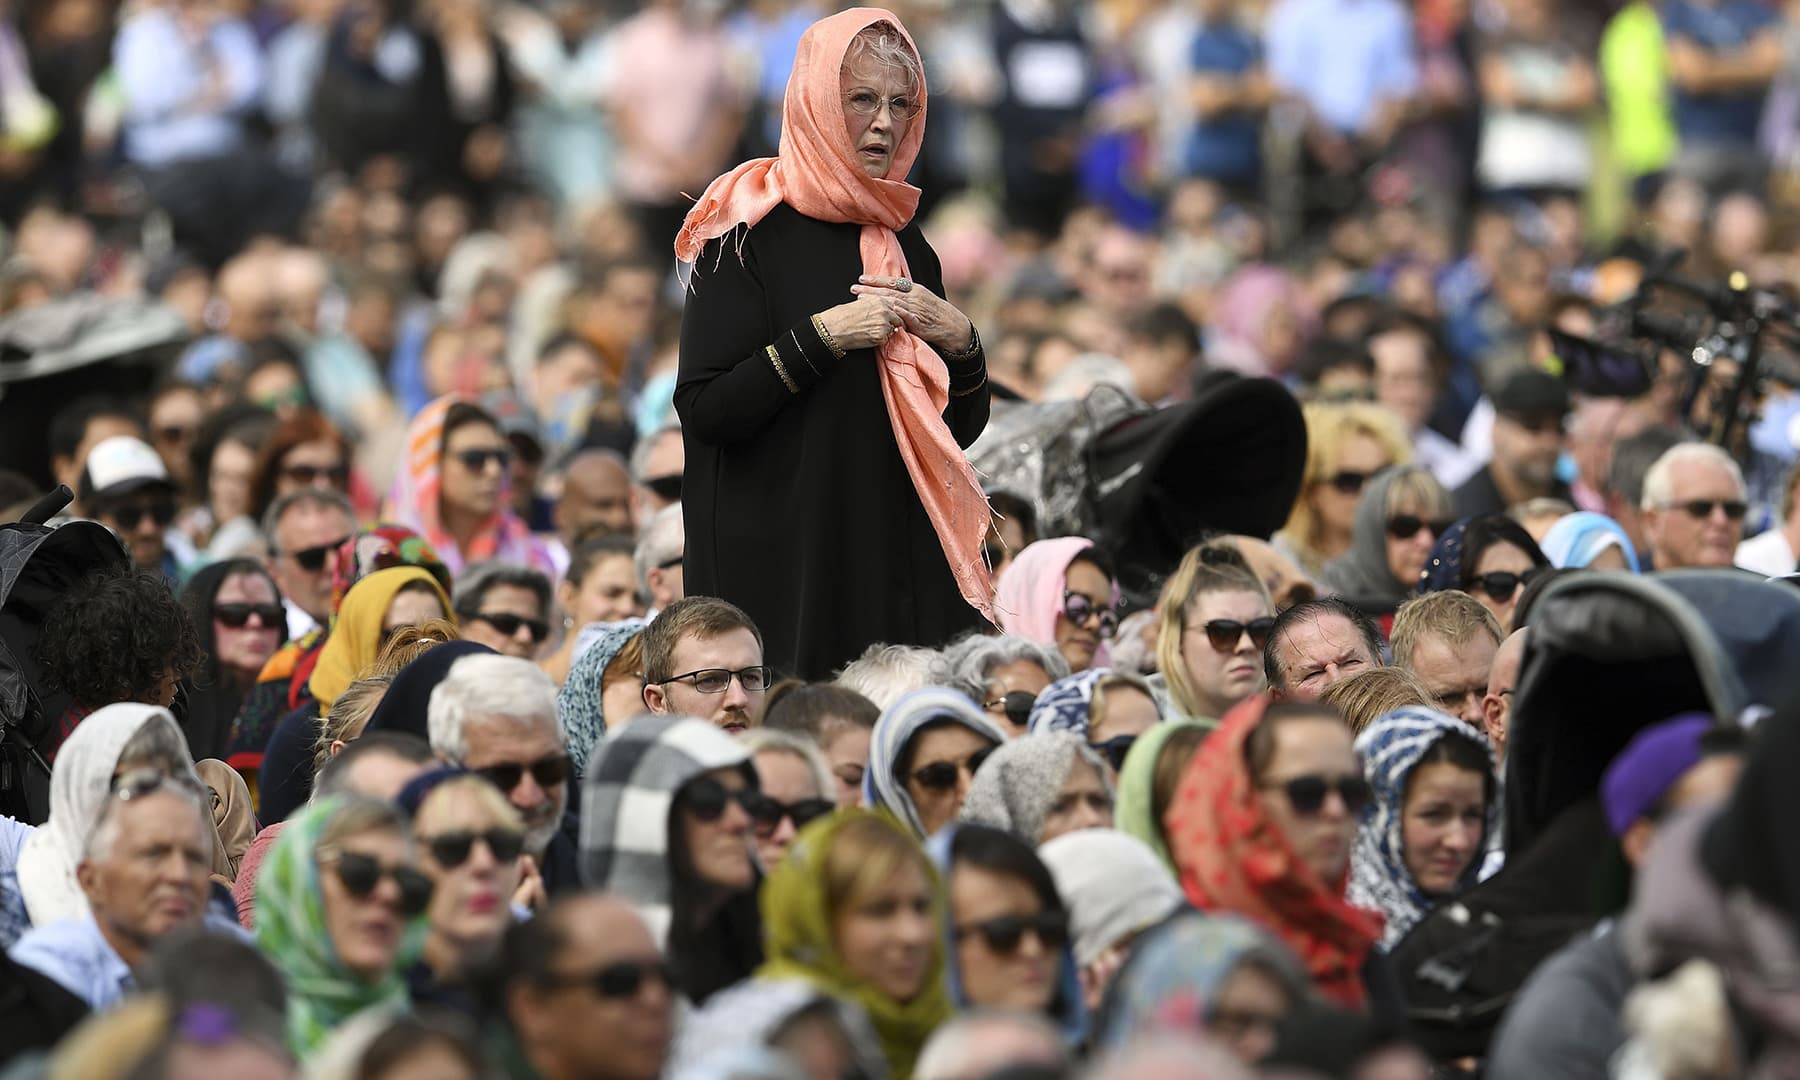 Members of the public look on during a gathering for congregational Friday prayers and two minutes of silence for victims of the twin mosque massacre, at Hagley Park in Christchurch. — AFP